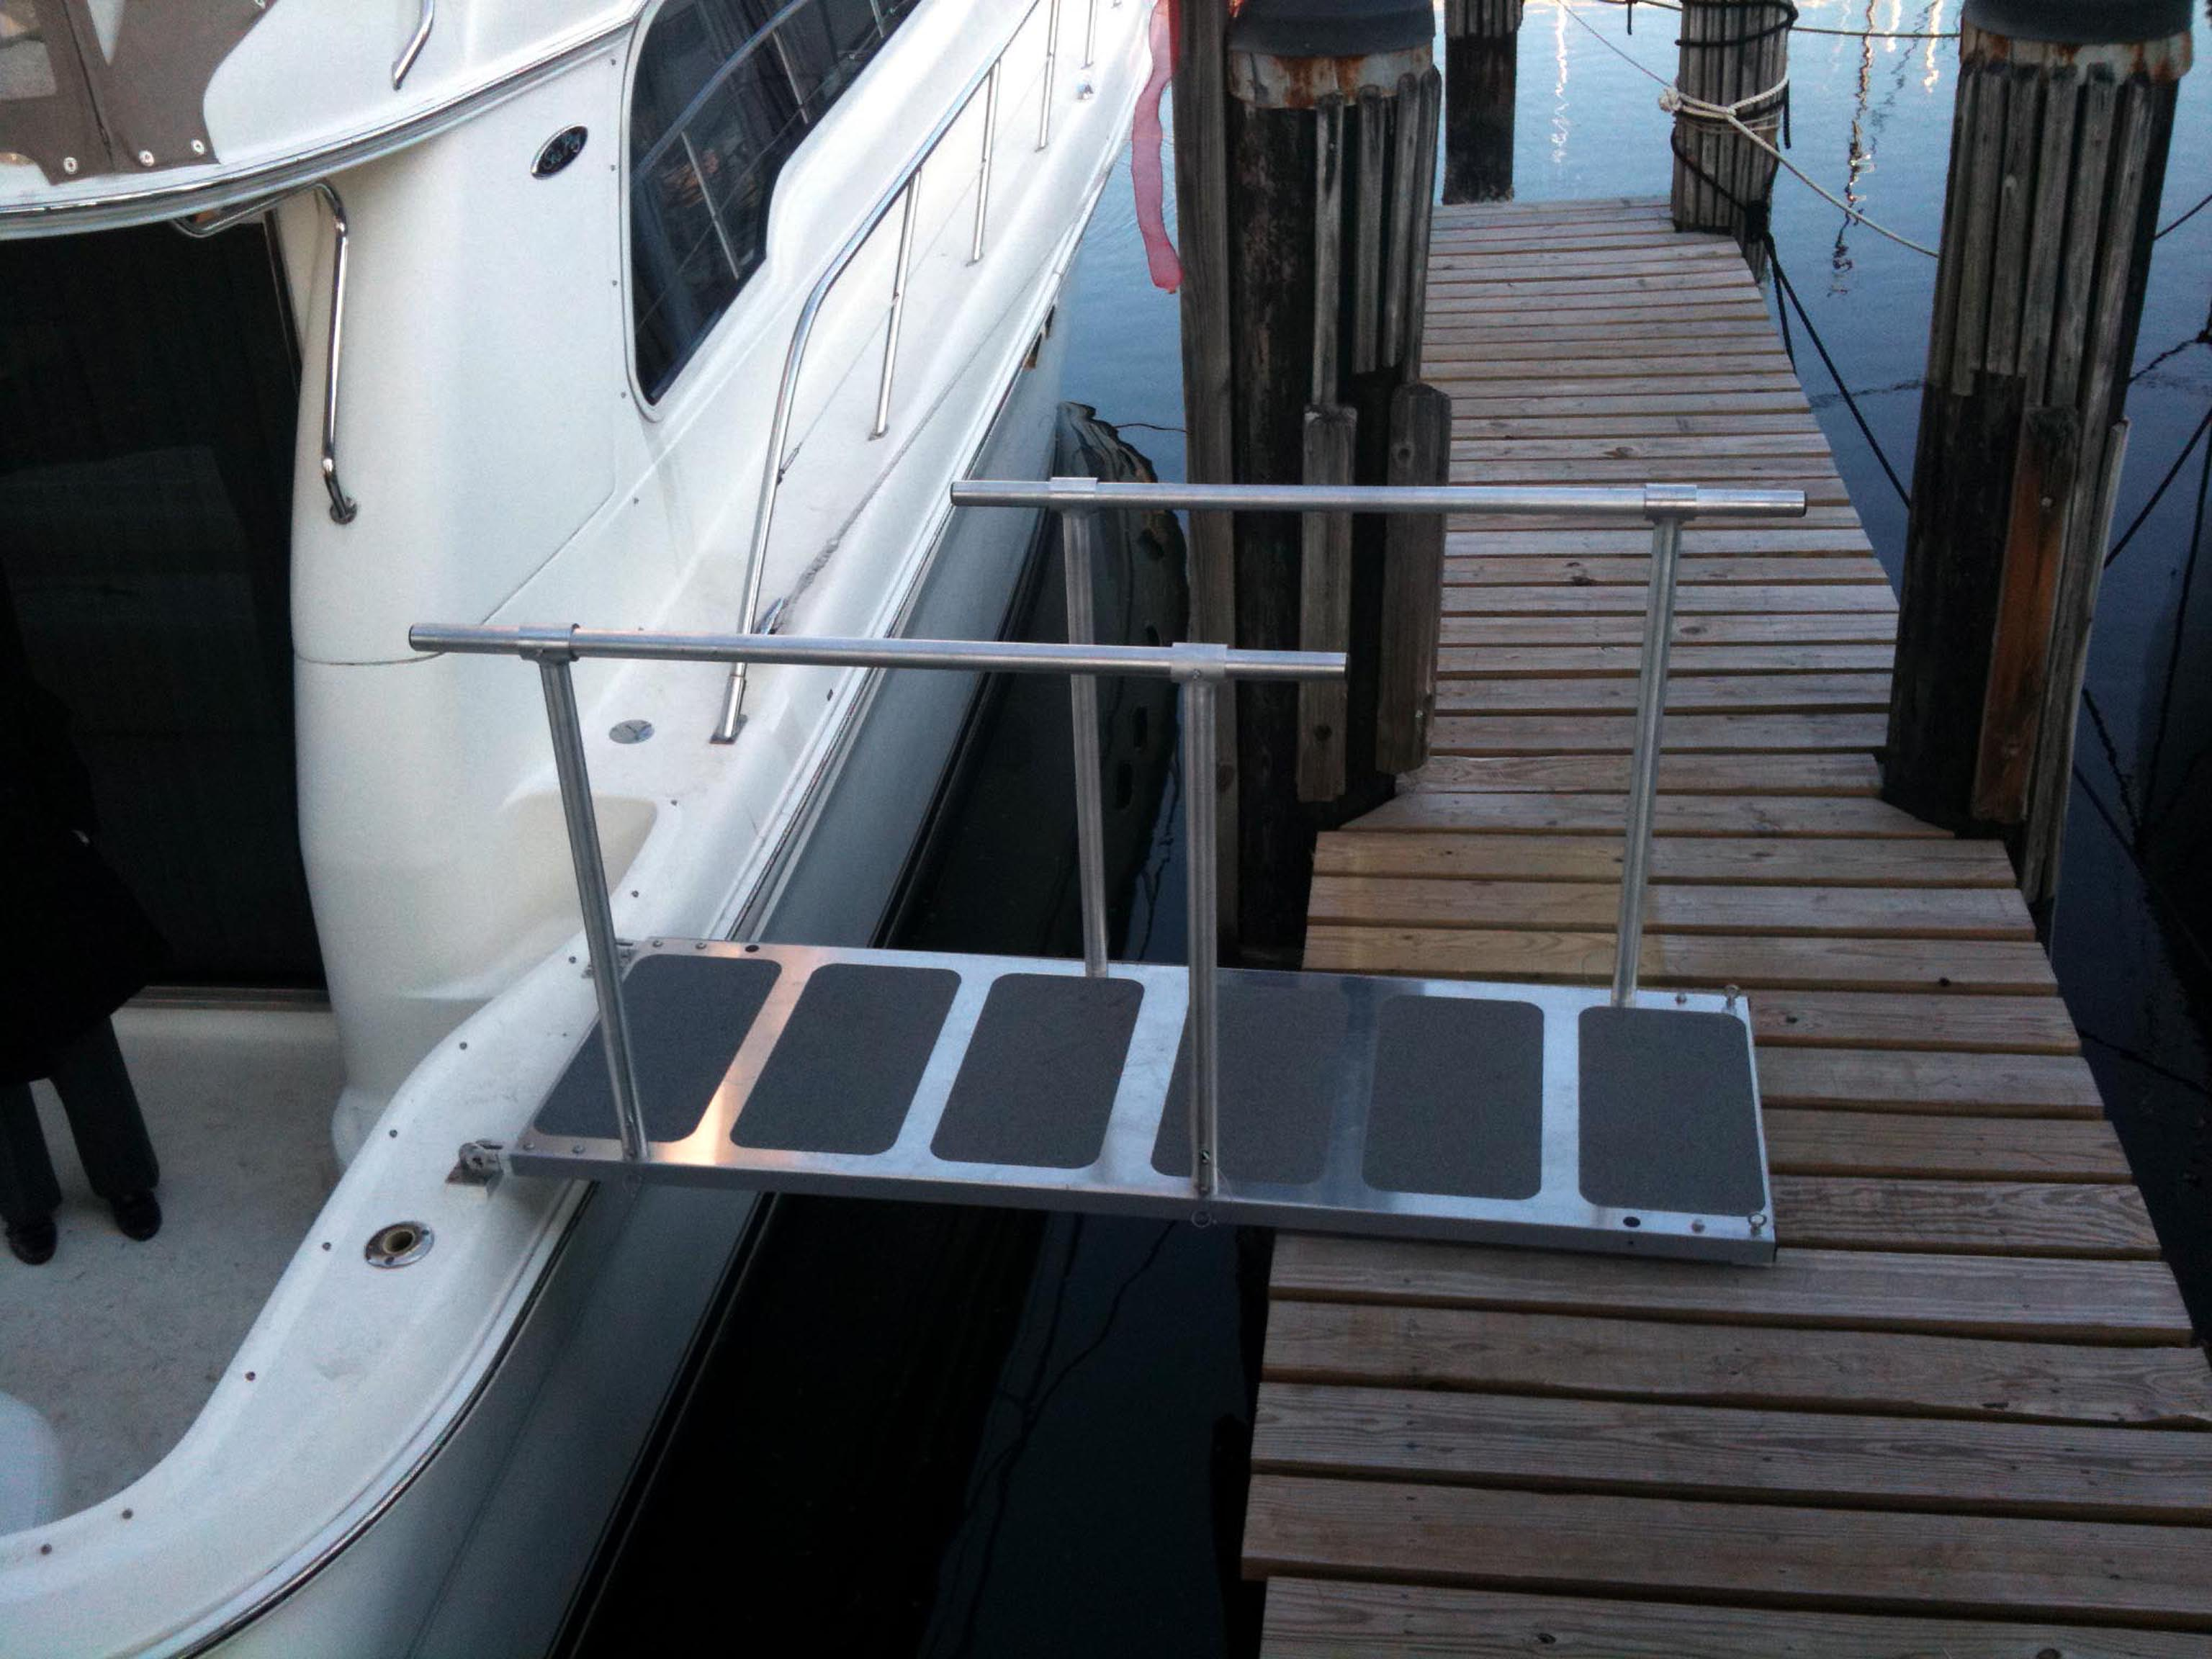 Boat Boarding Ramps Passerelle Solution Steadi Plank